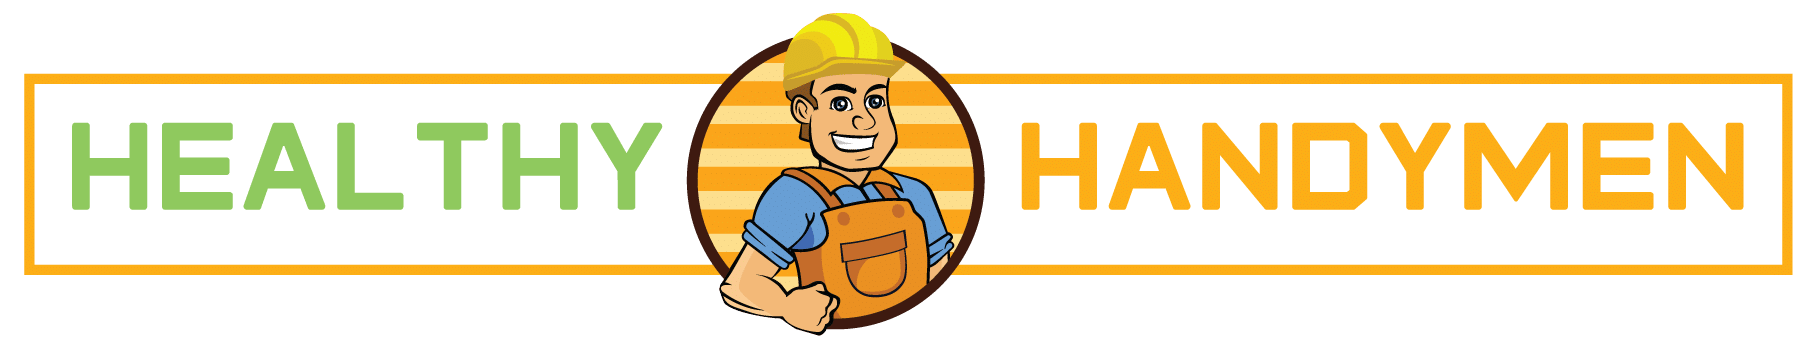 Tools Buying Guides for Handymen